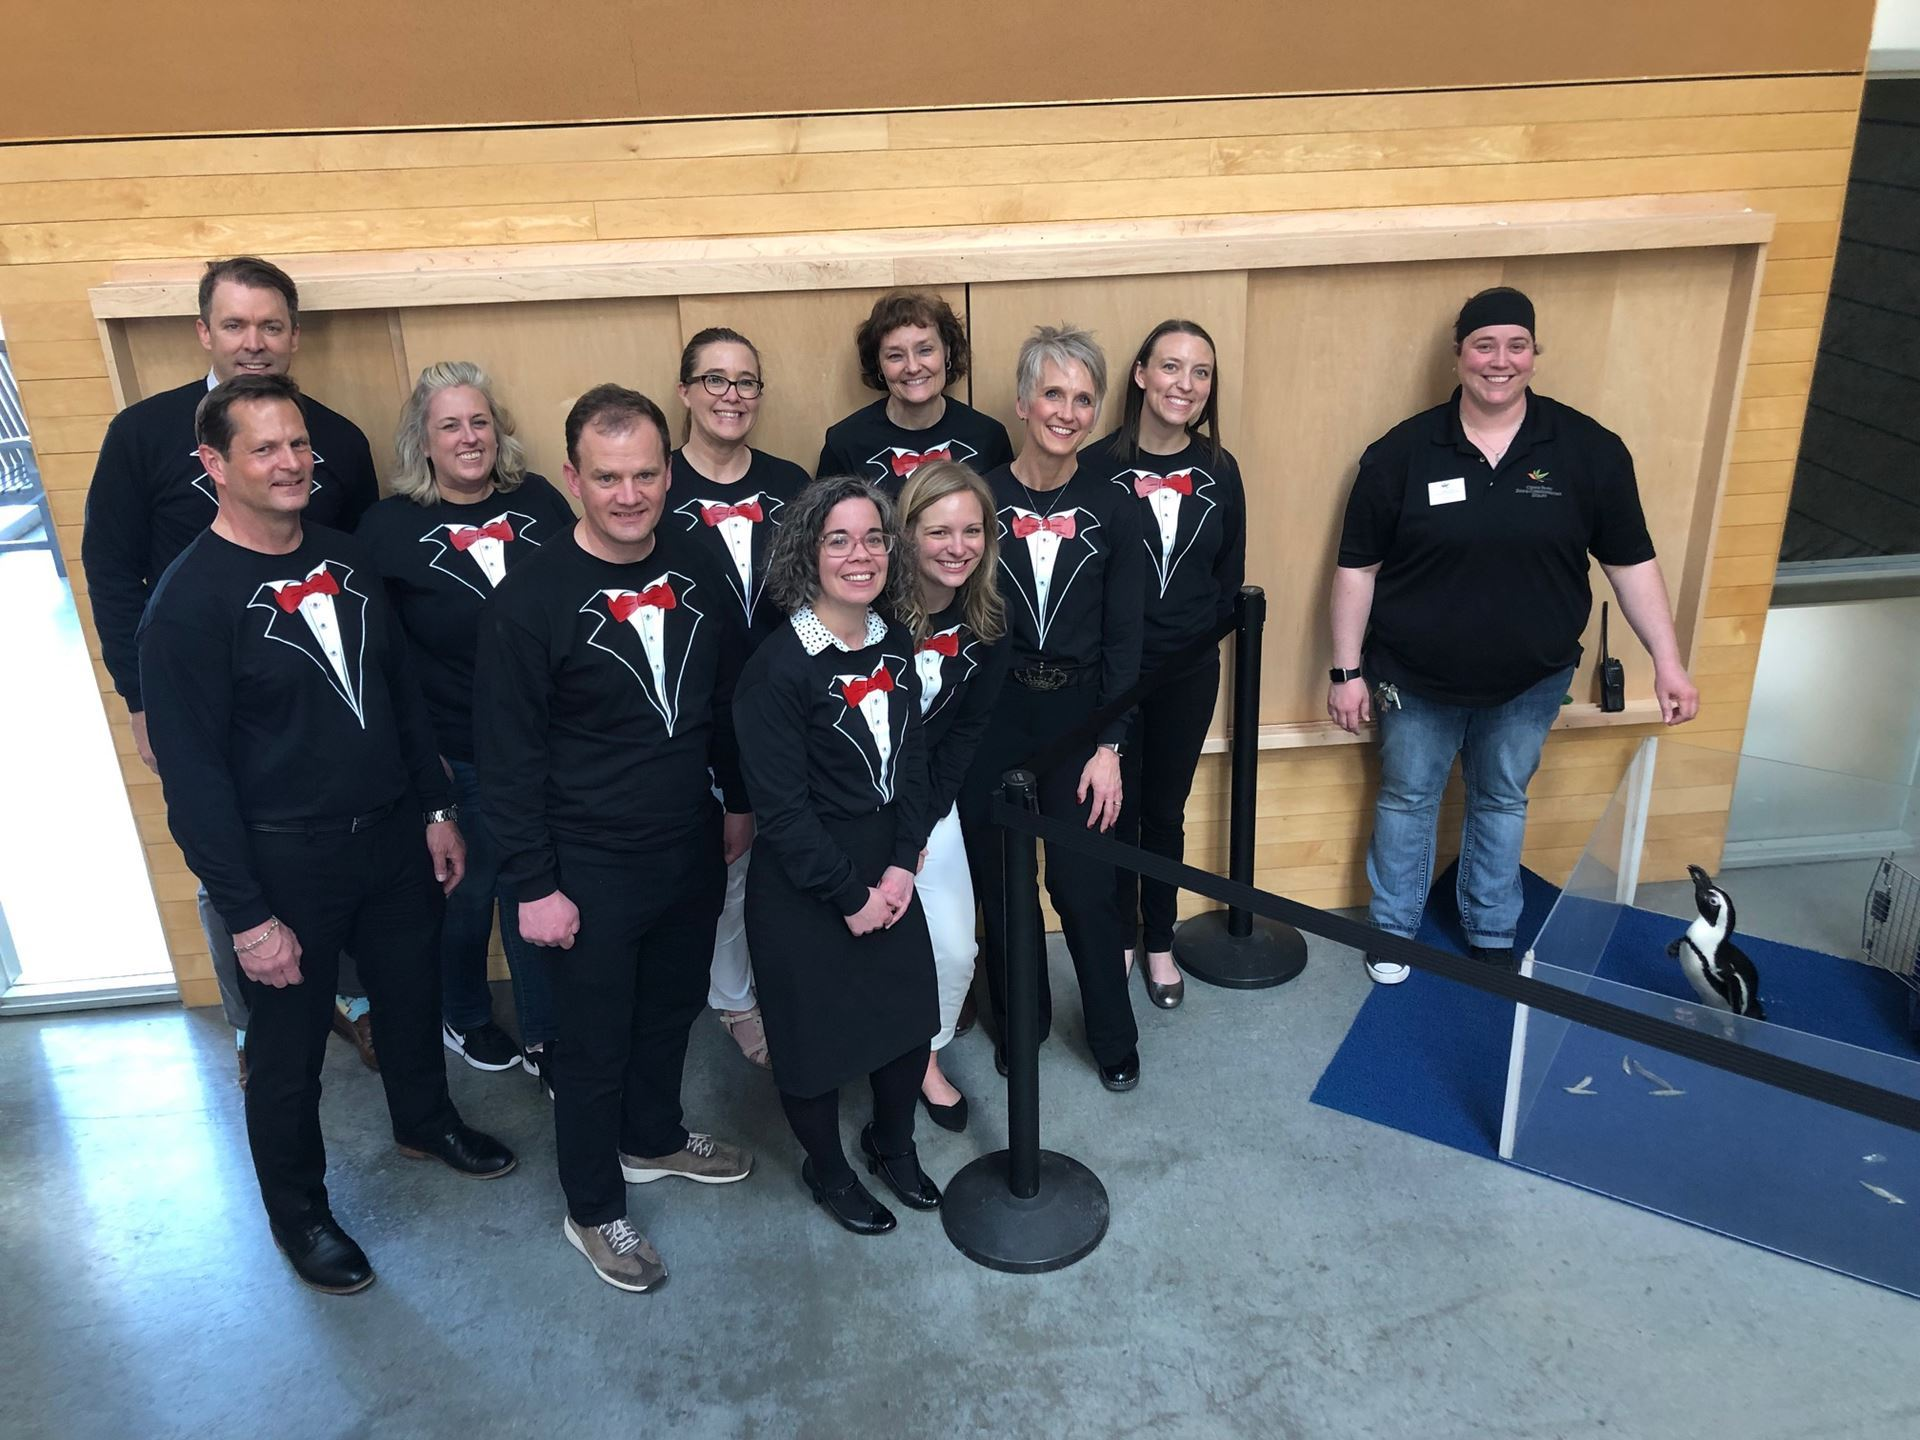 Board members dressed in tuxedos pose next to Cupid the penguin at Como Zoo.